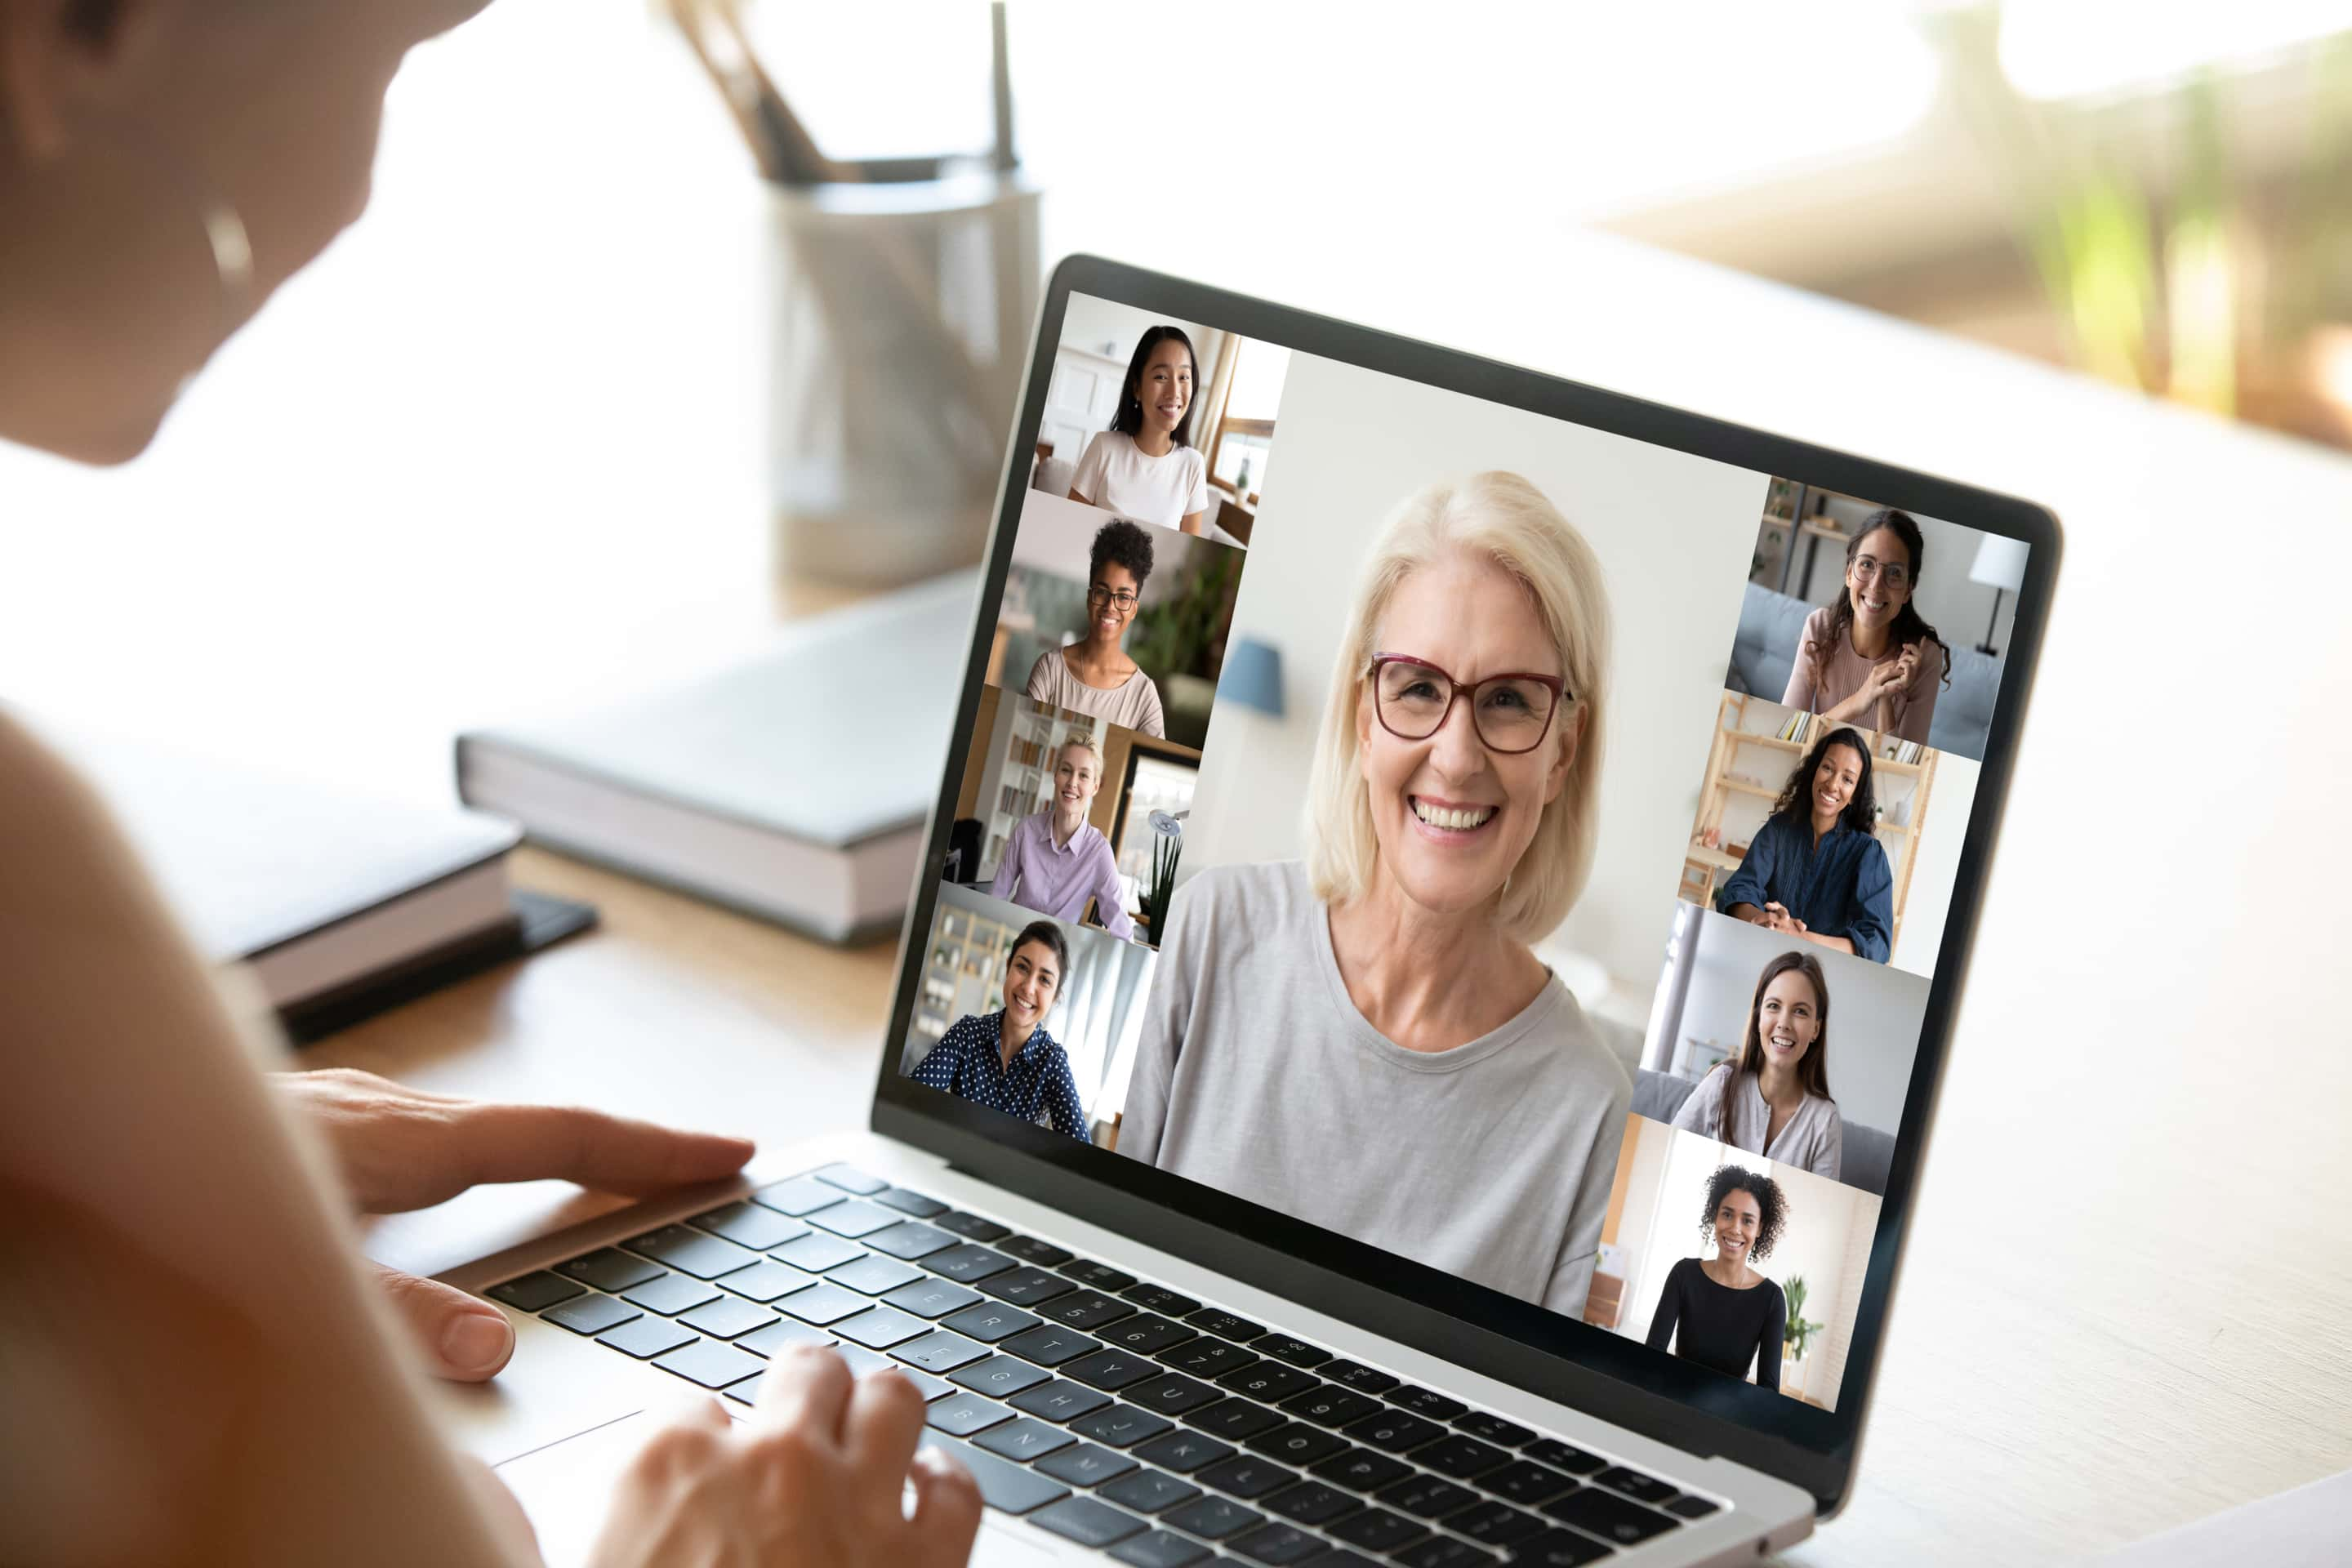 Diverse Woman Involved In Group Videocall, Laptop Screen View